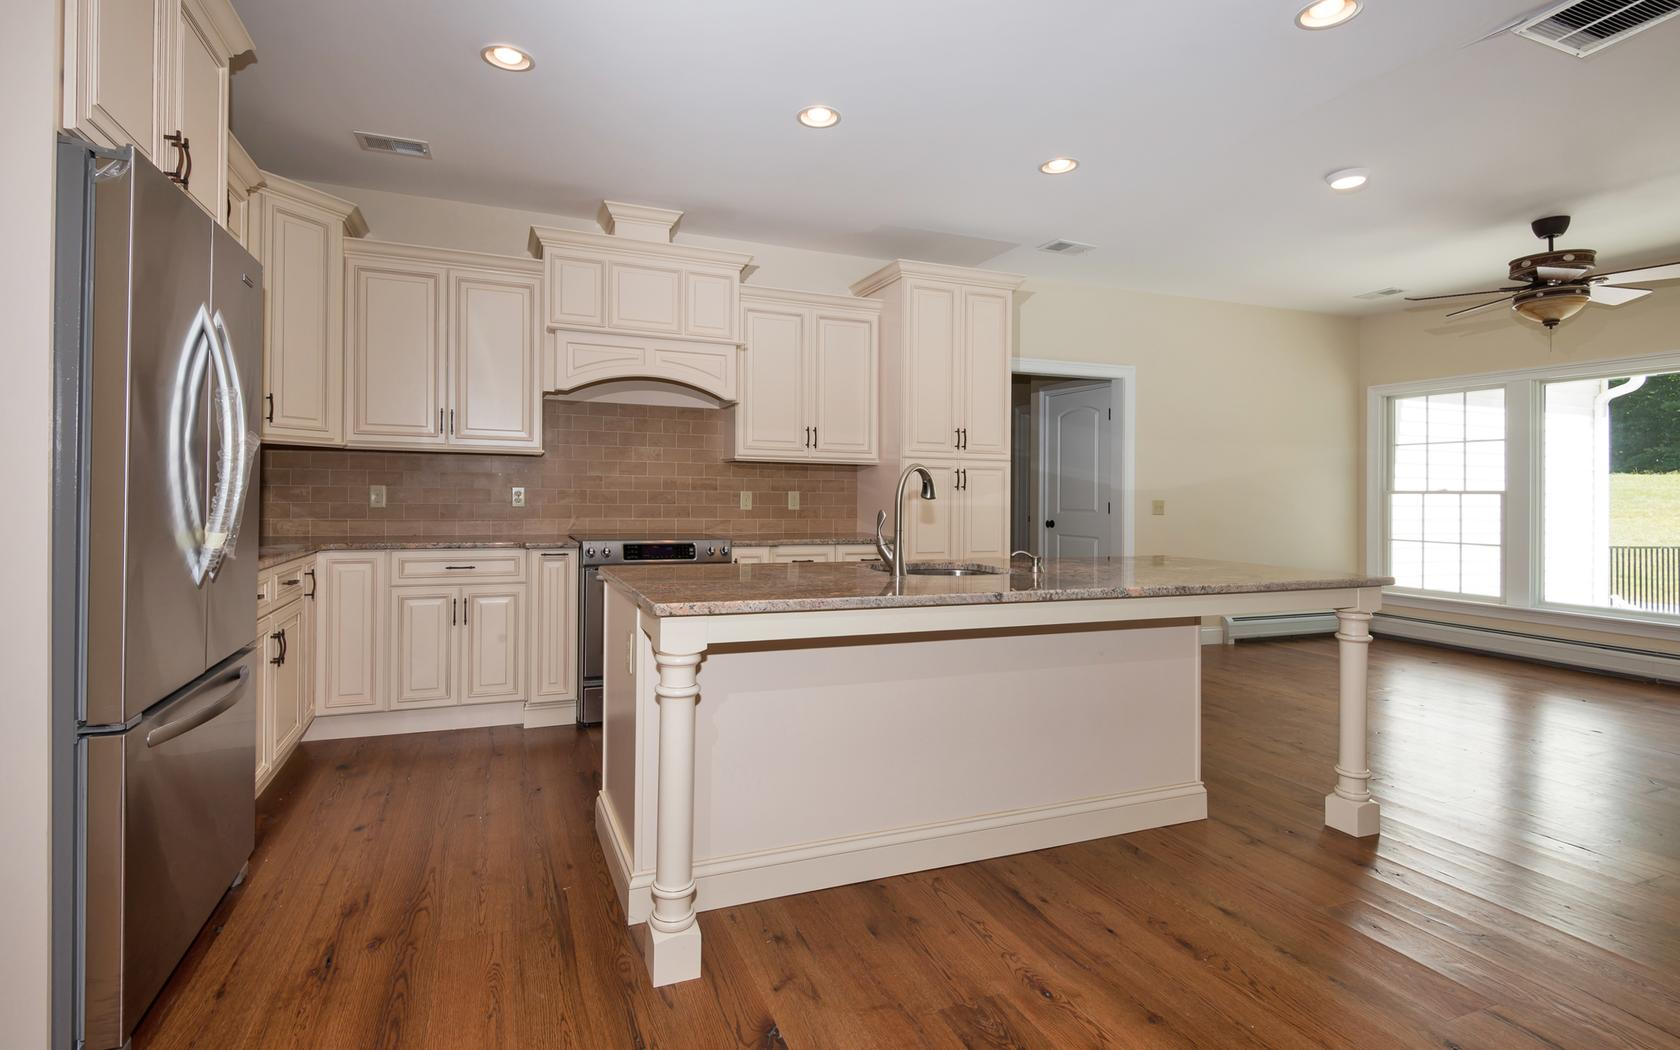 Kitchen cabinets long valley nj - Granite Ss Appliances